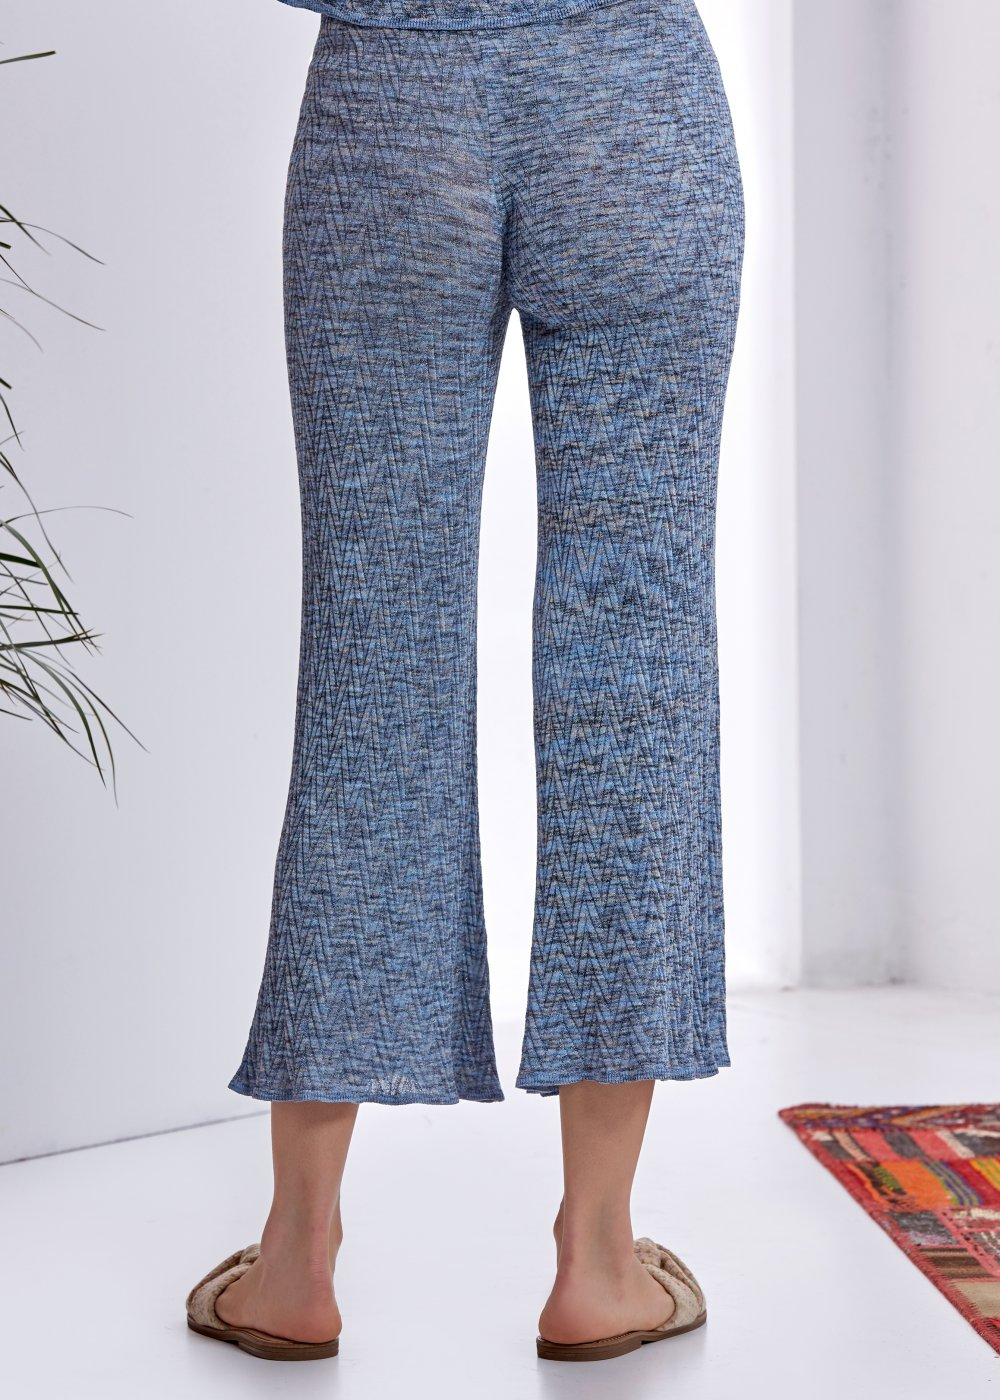 PATTERNED BLUE KNIT PANT